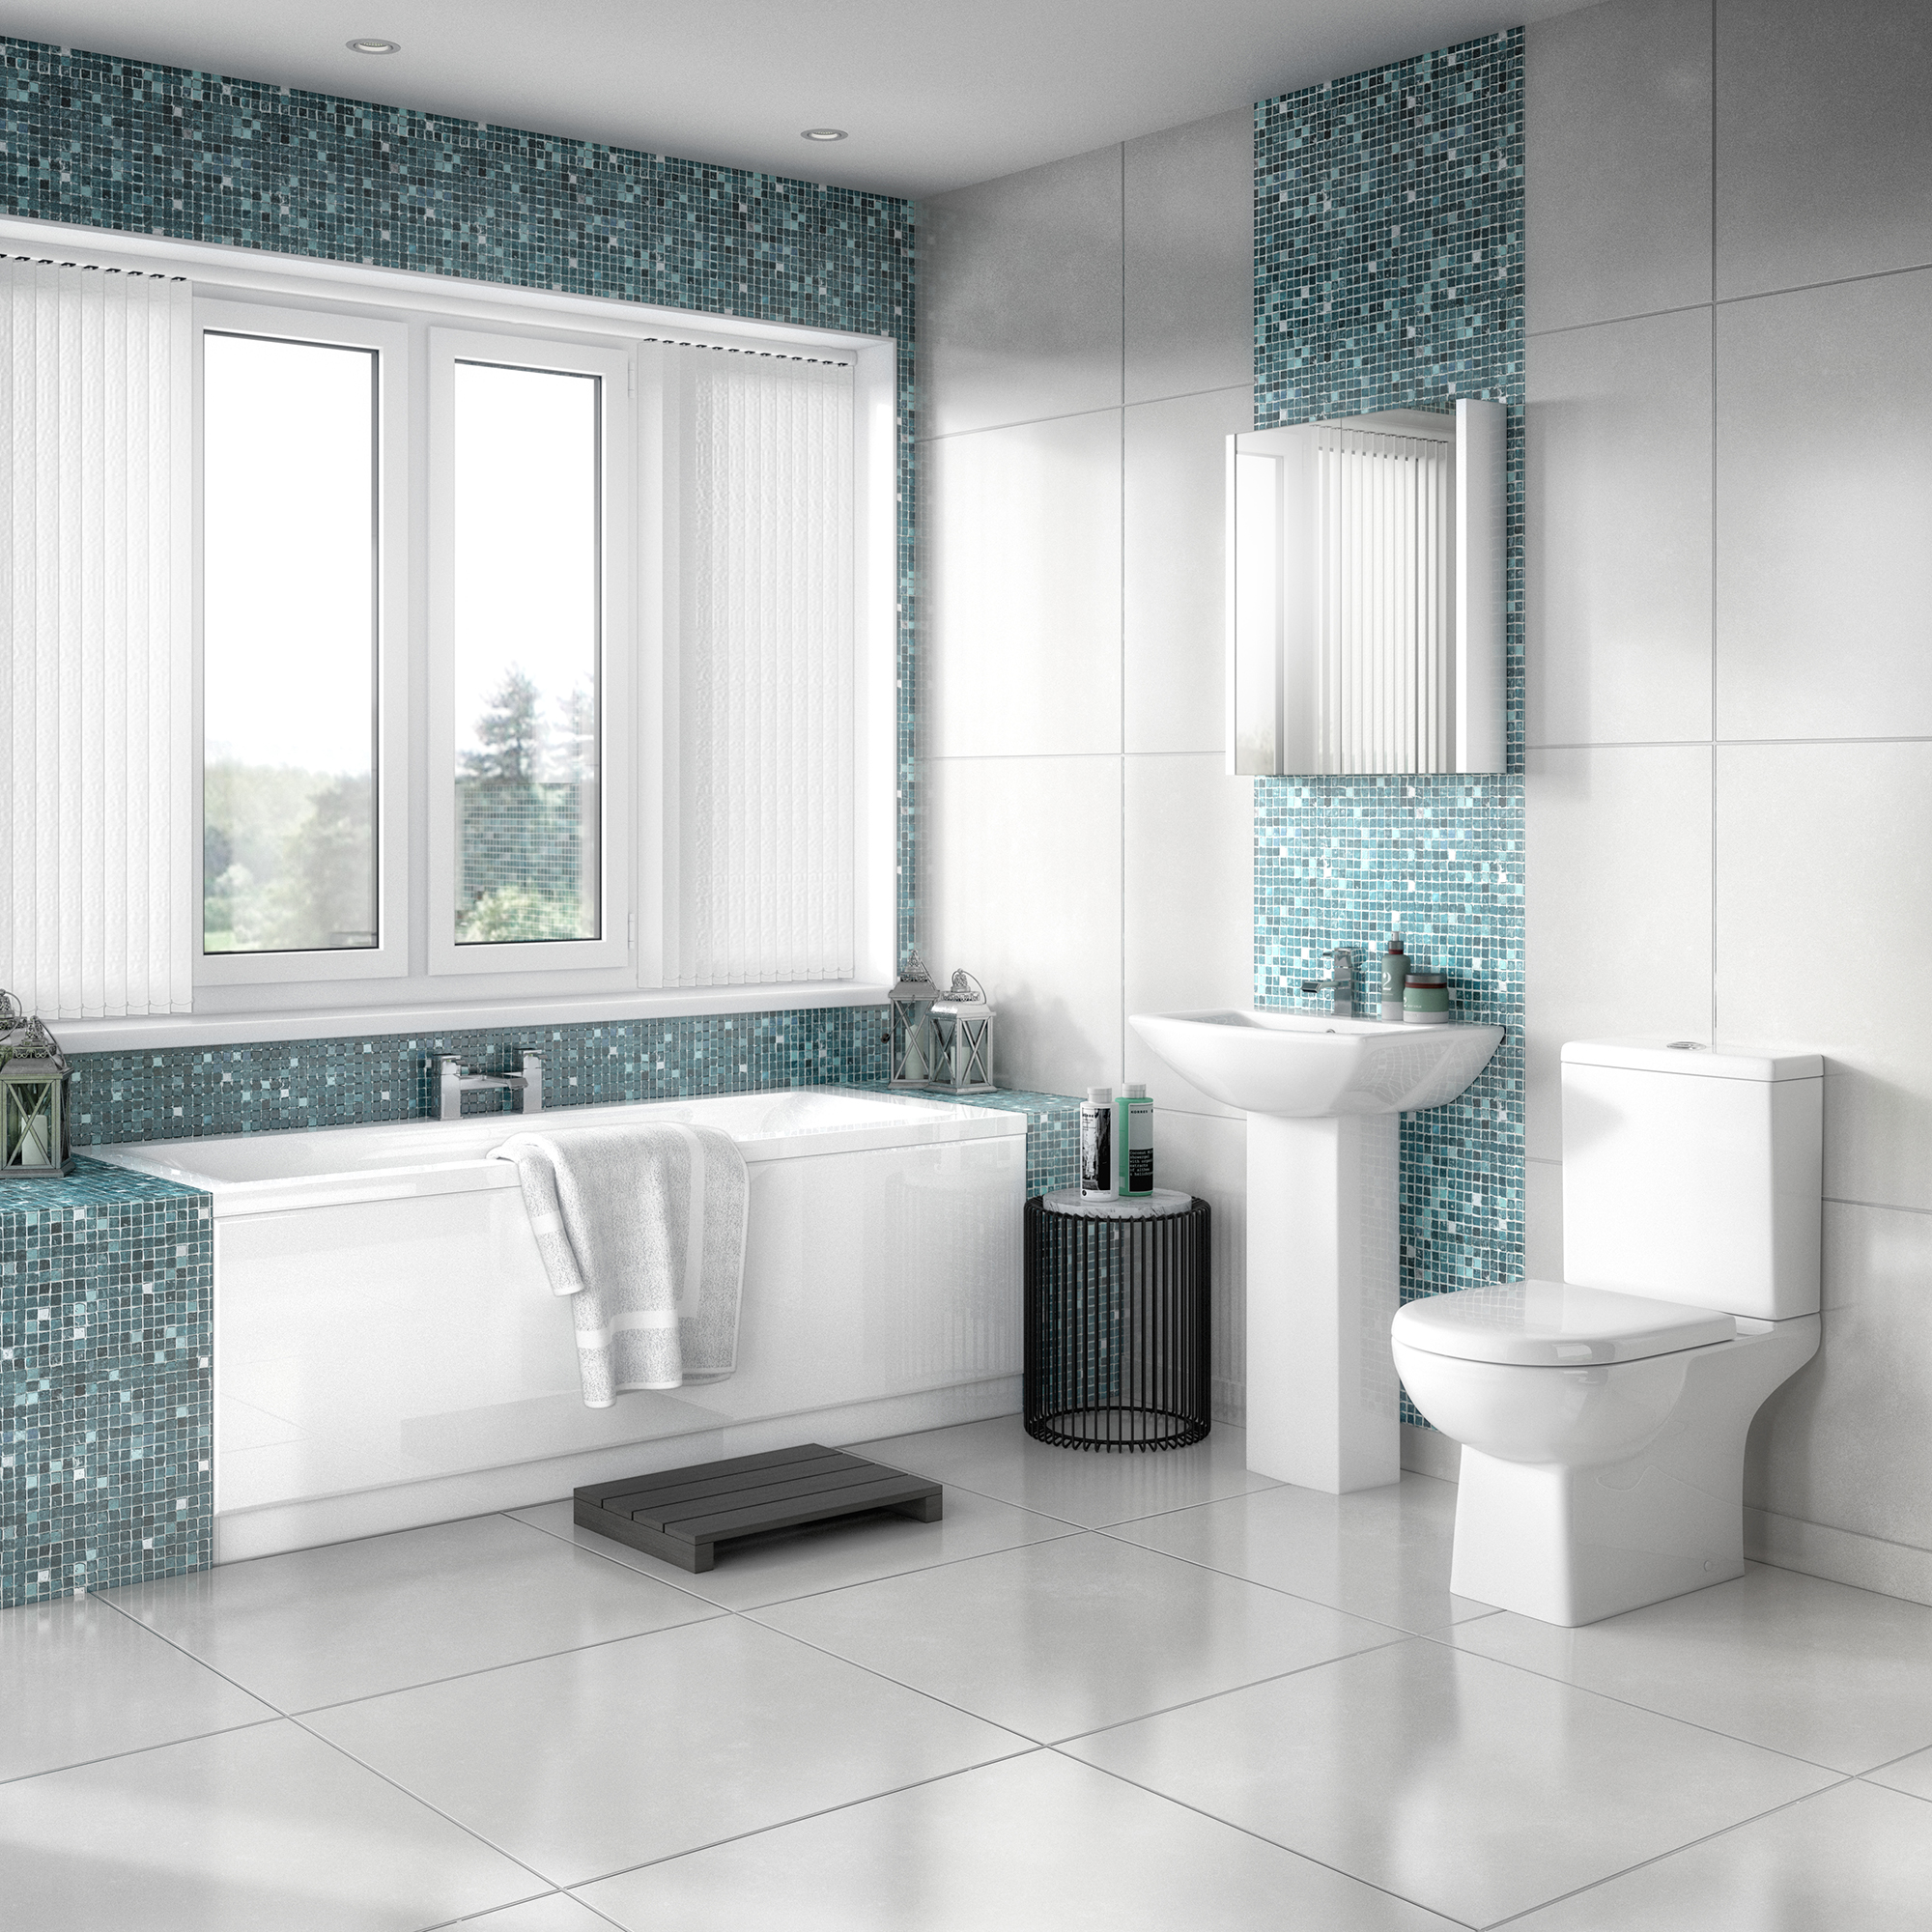 Town and Country Tiles and Bathrooms